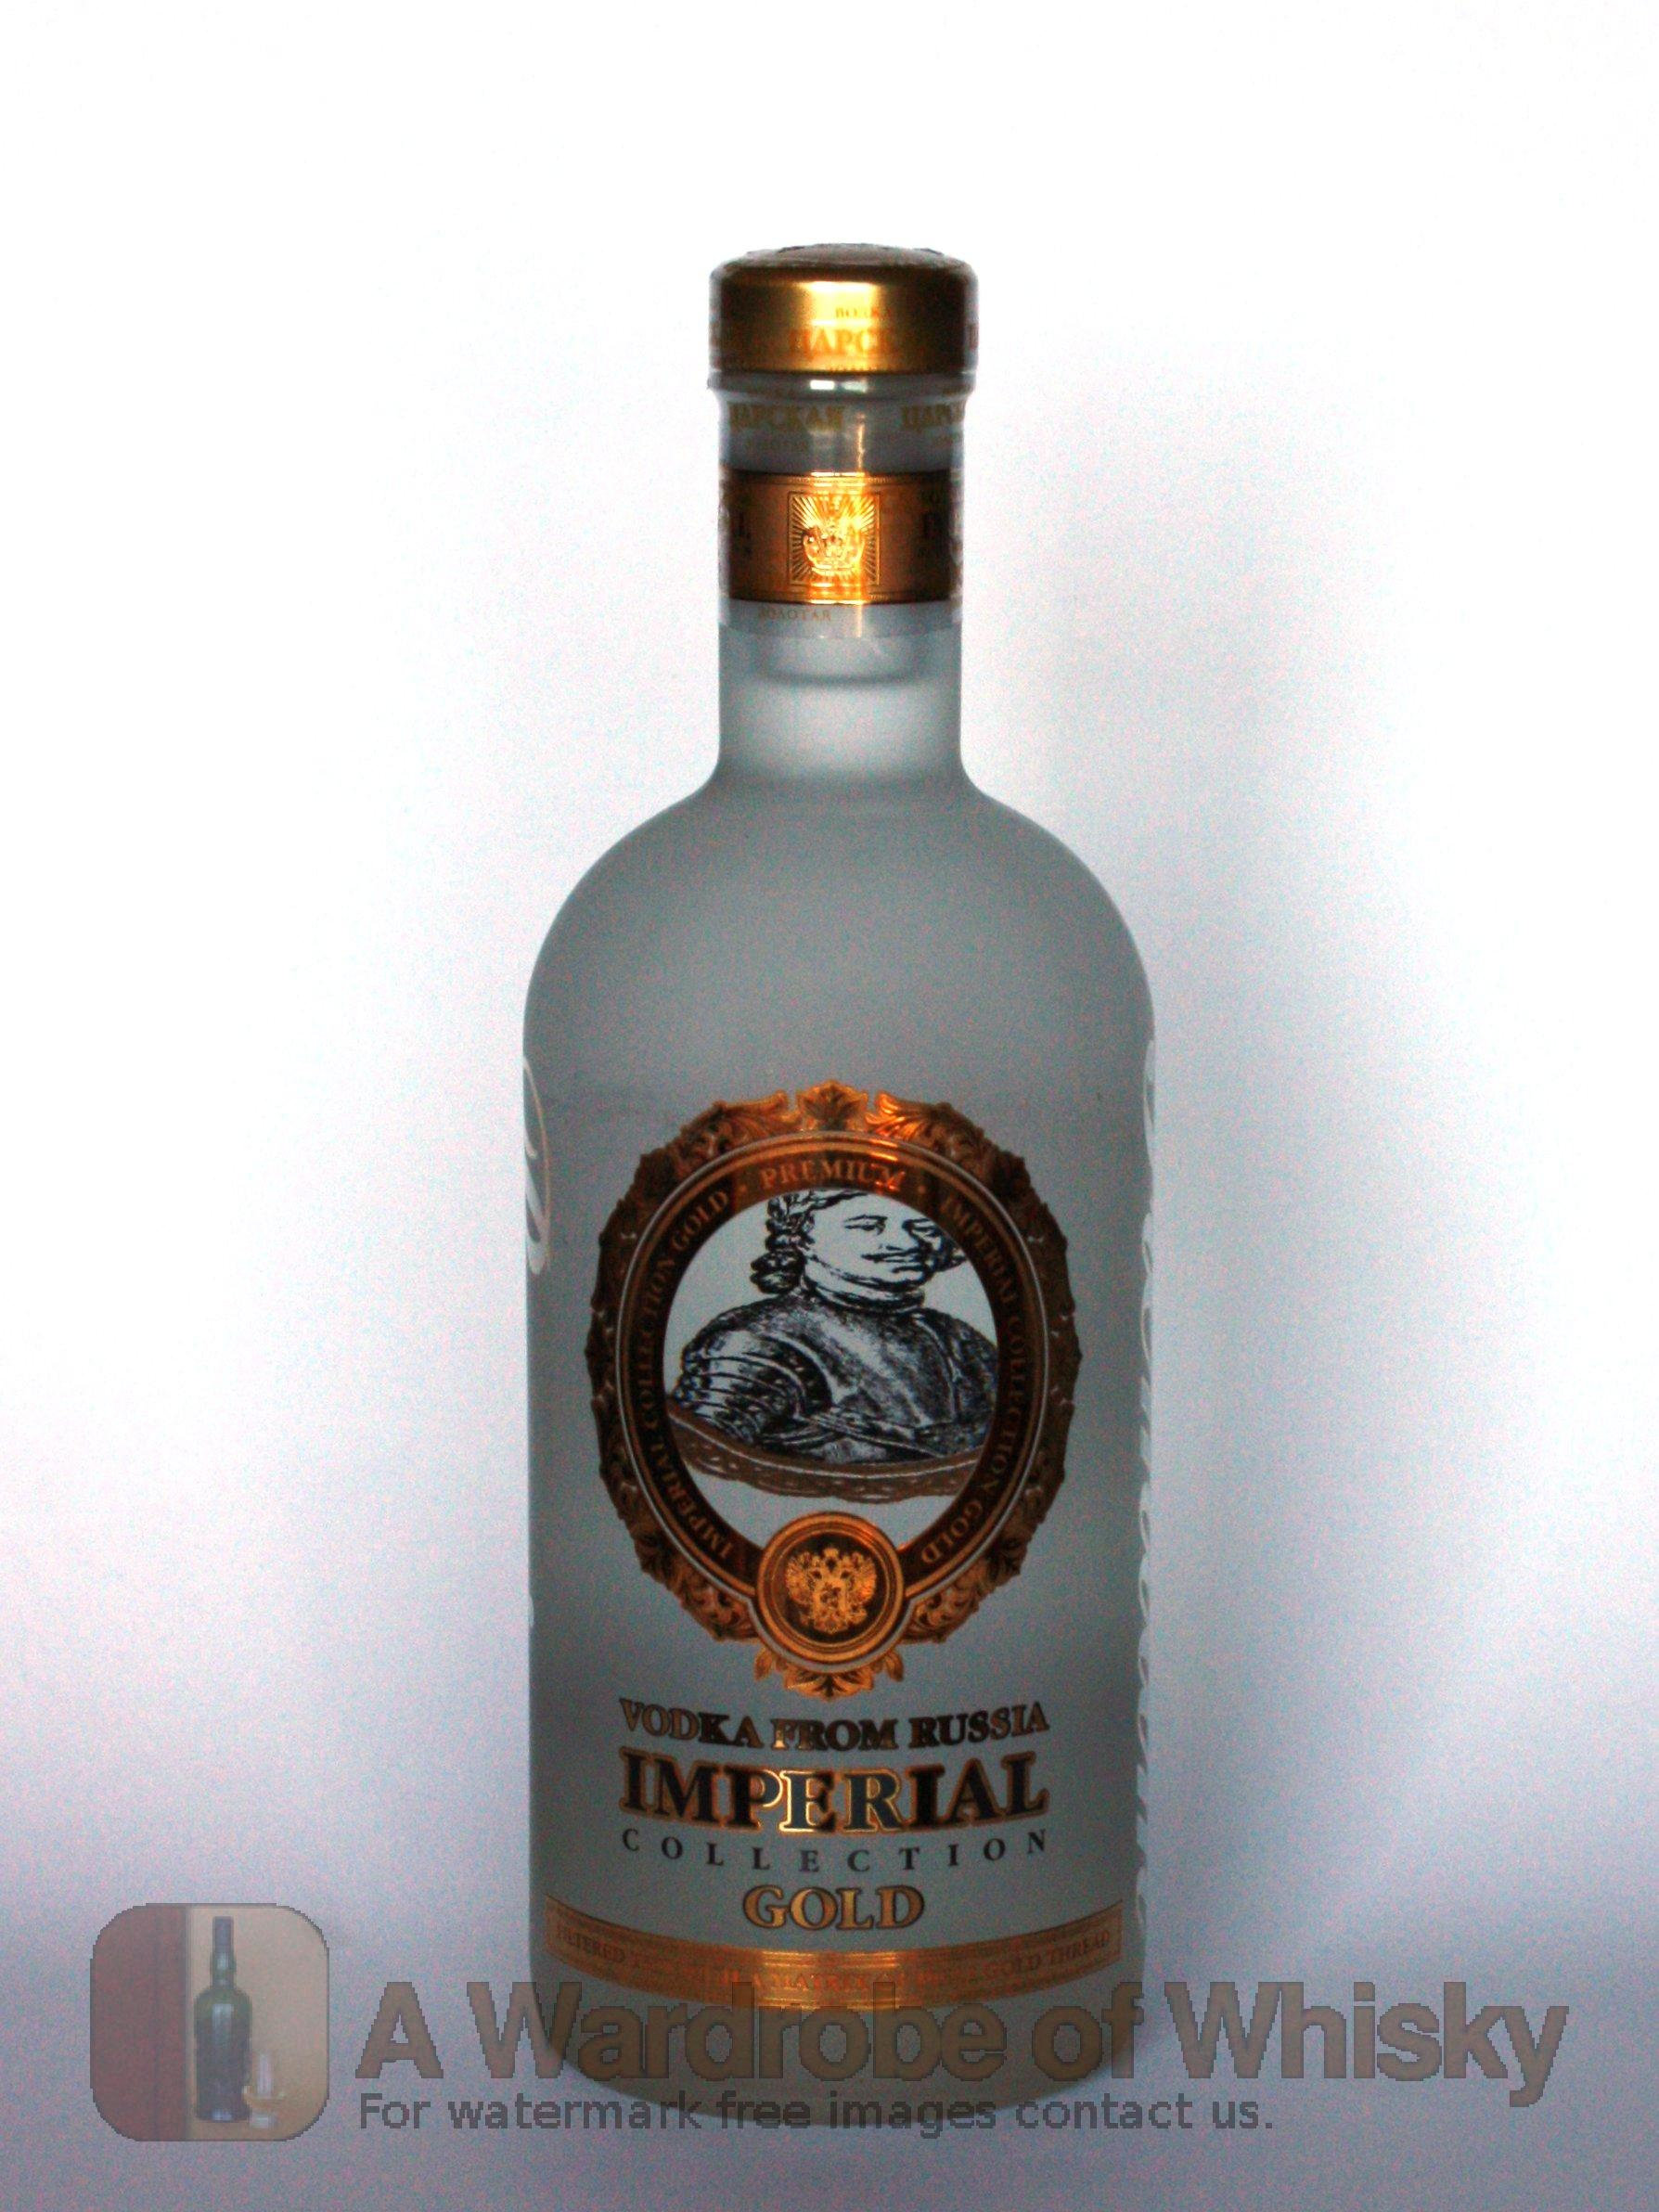 Buy Imperial Collection Gold Russian Vodka Vodka